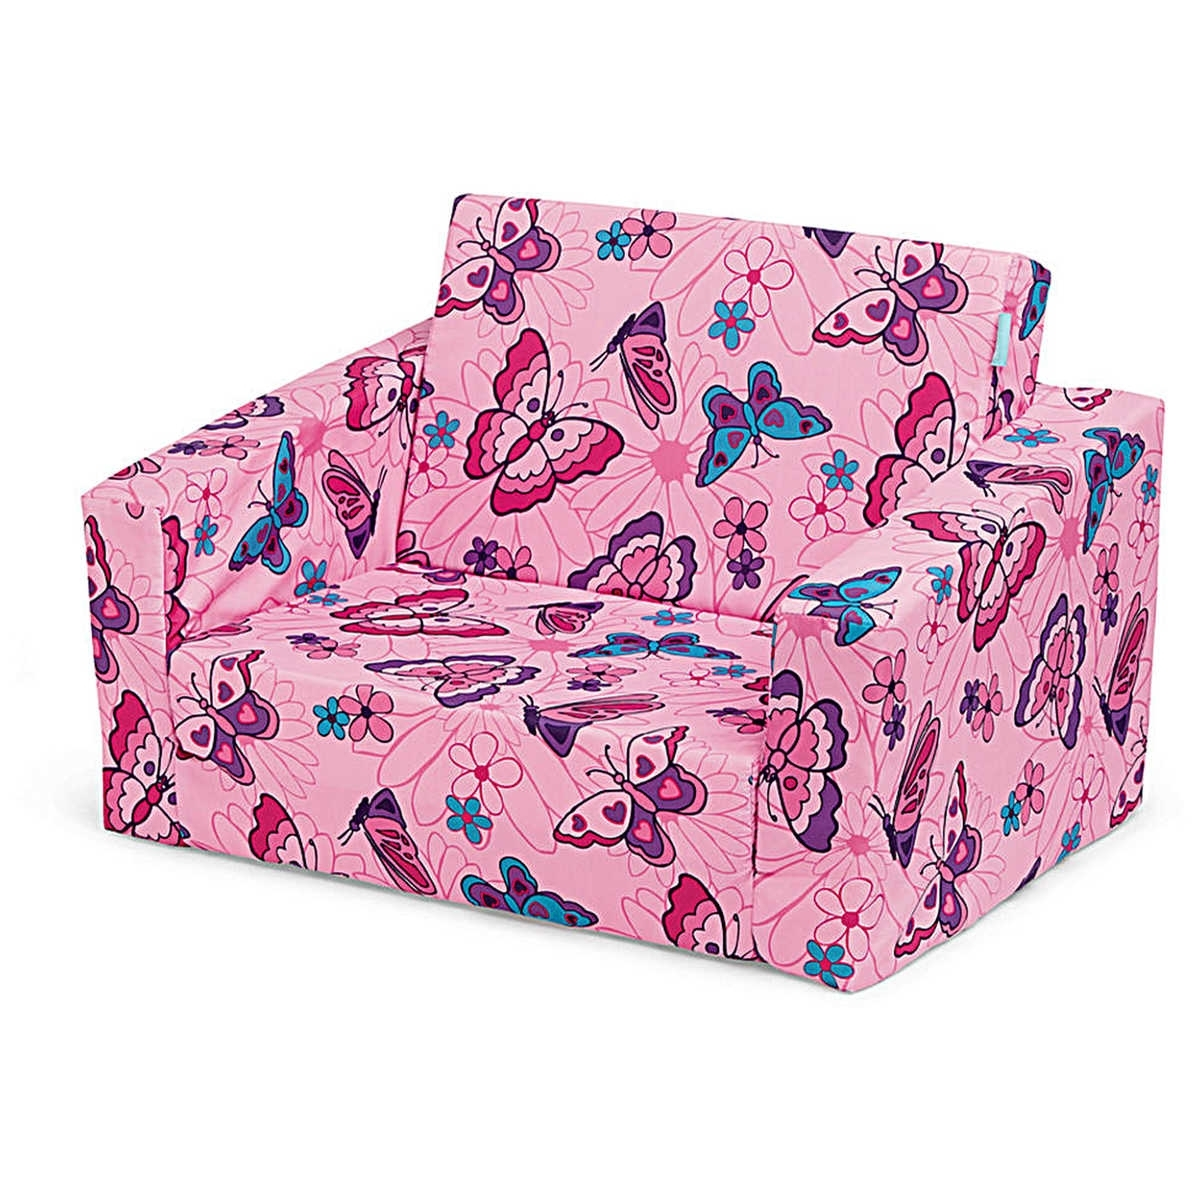 Latest Flip Out Sofa For Kids – Home And Textiles Intended For Flip Out Sofas (View 9 of 20)